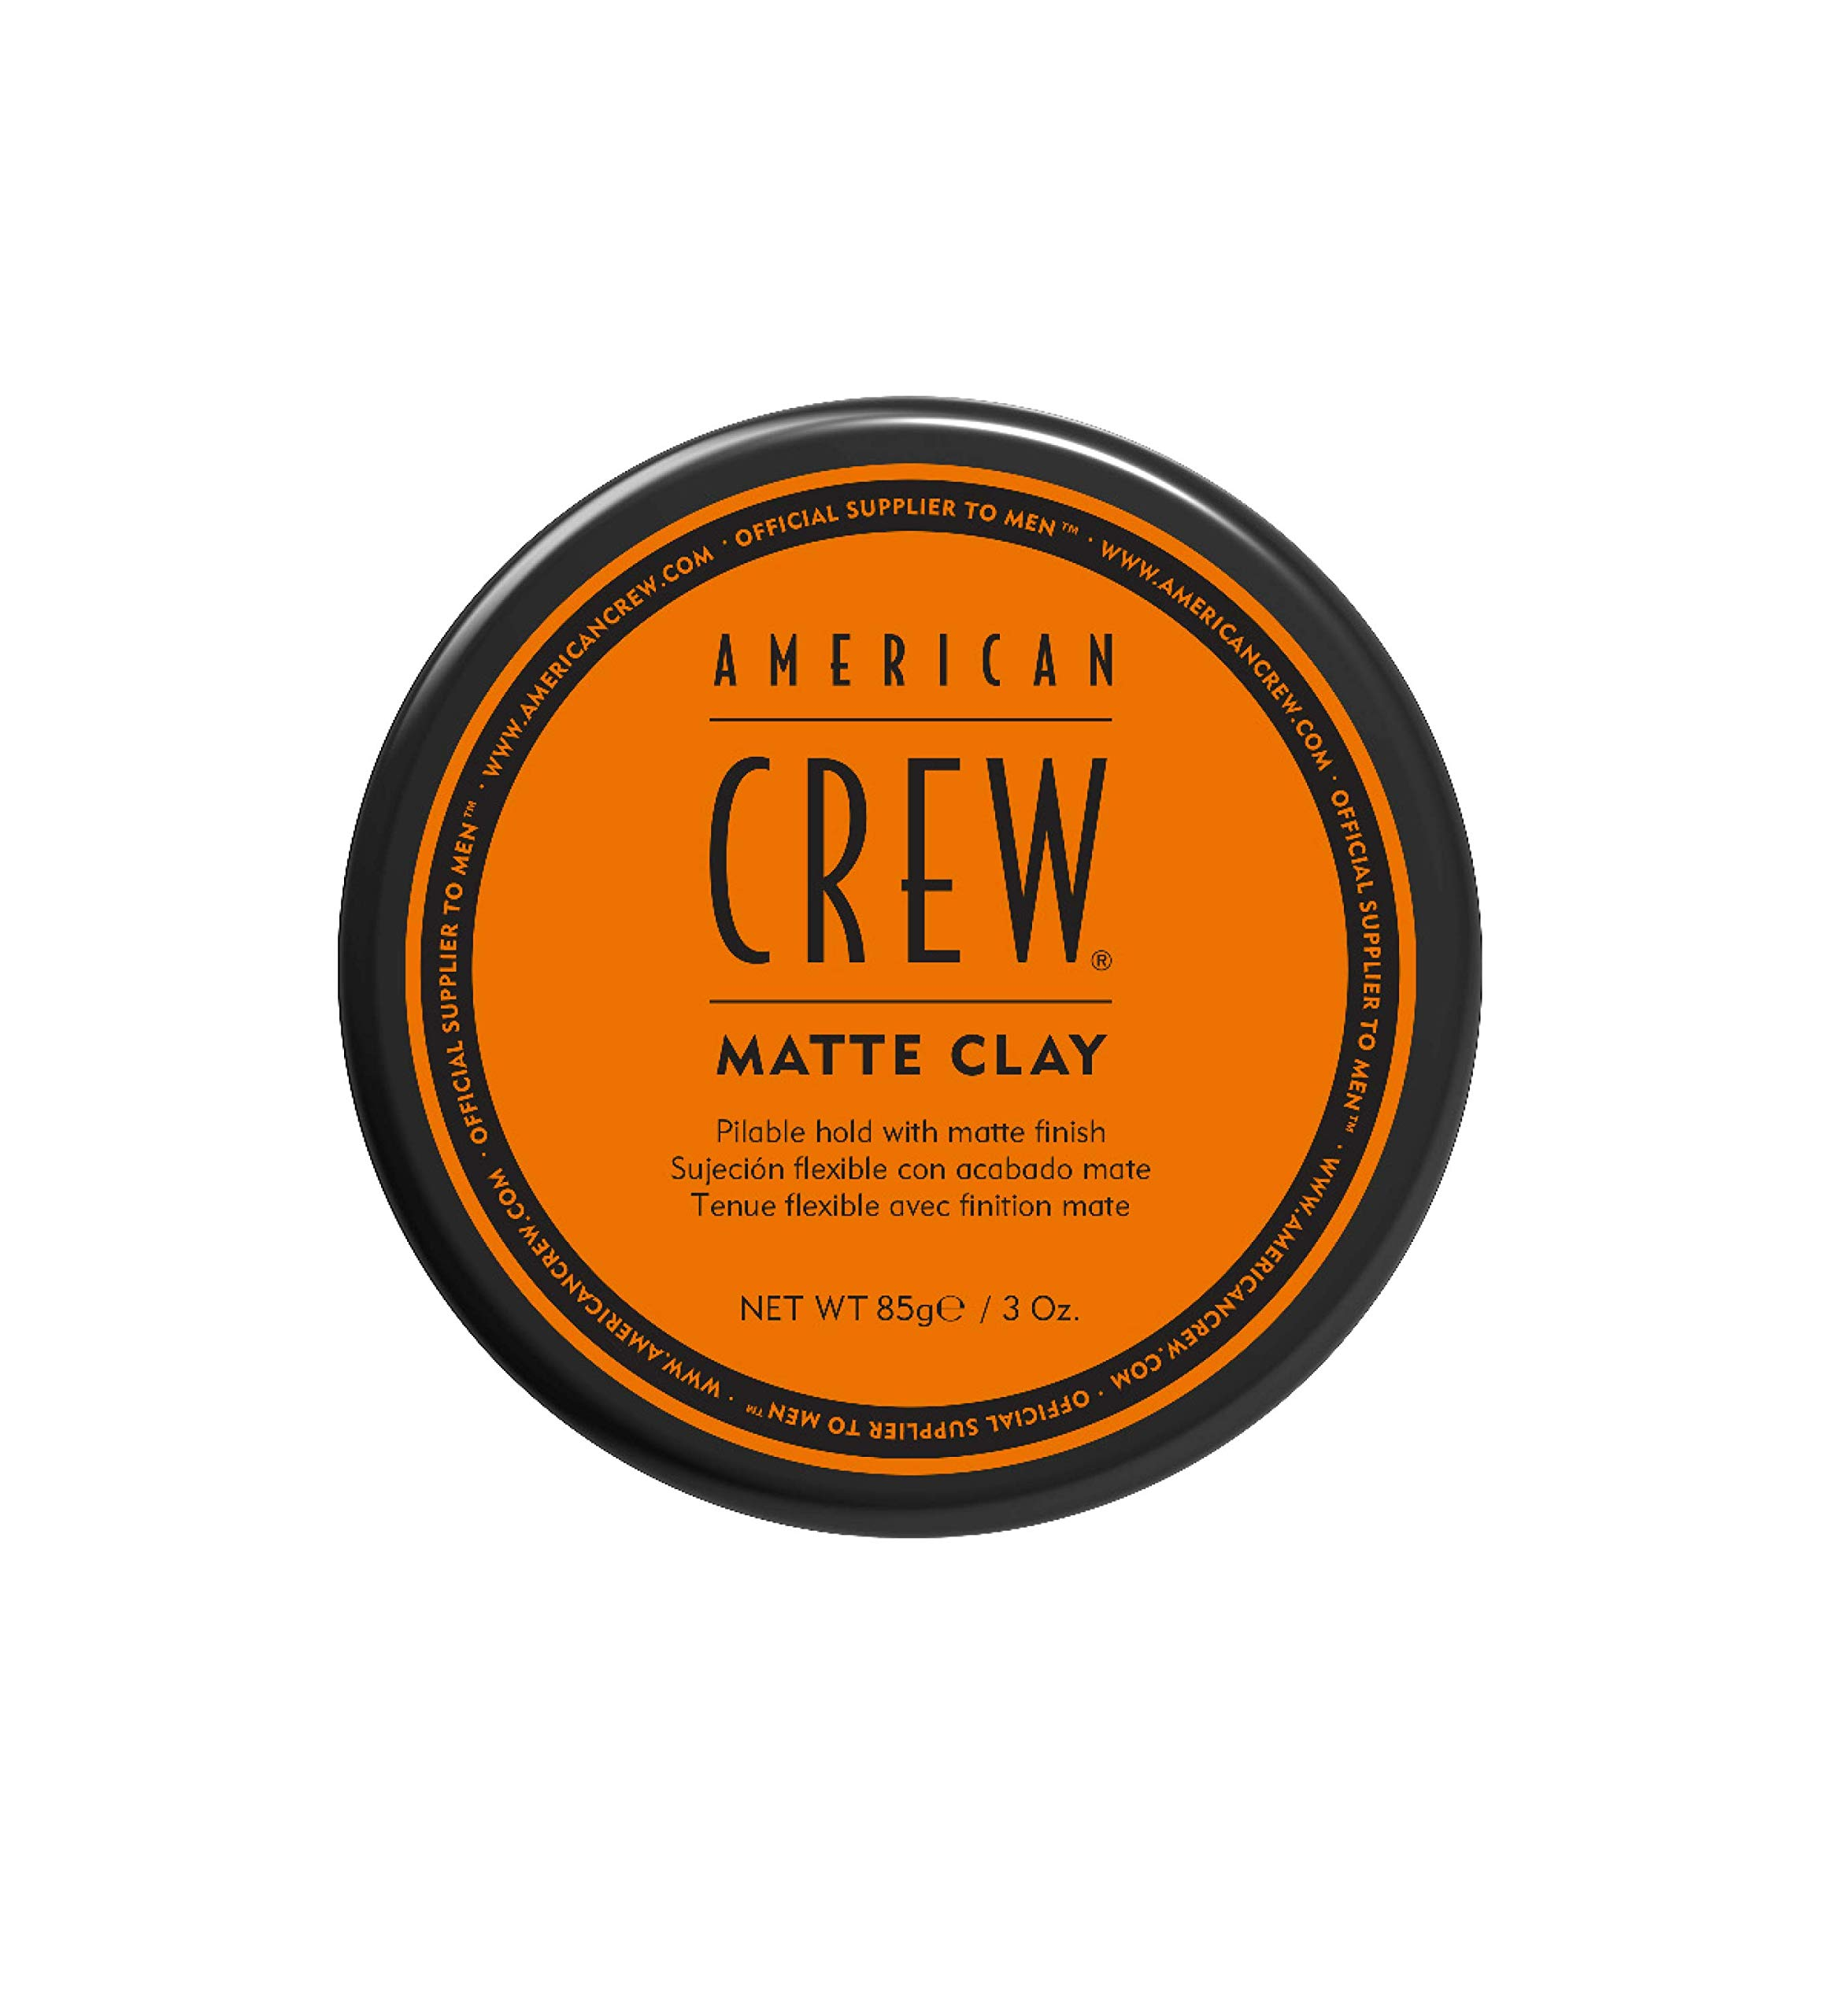 American Crew Matte Clay 3 oz by AMERICAN CREW